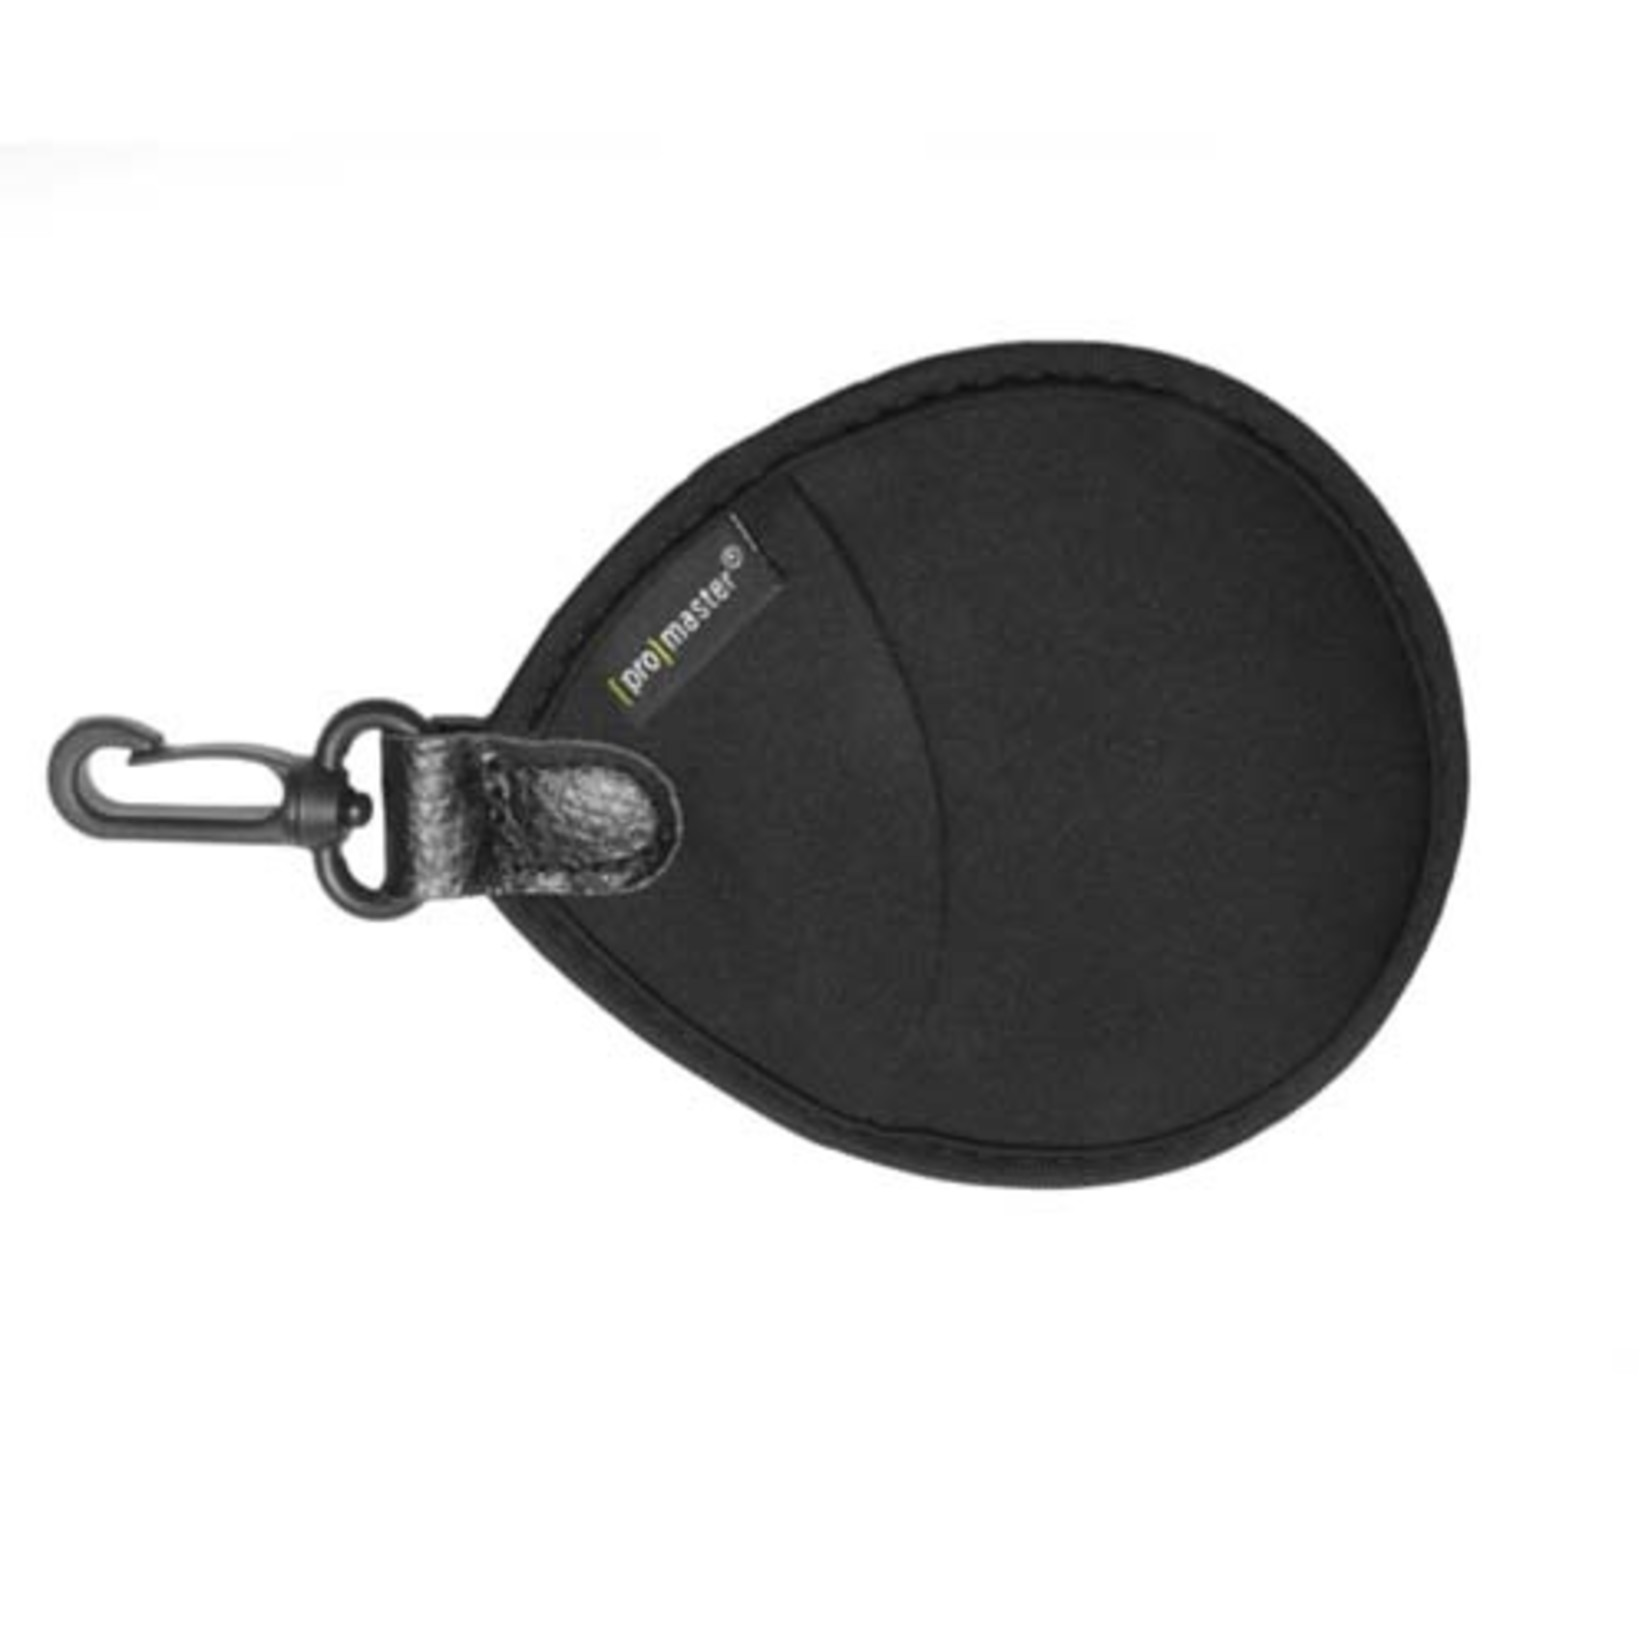 ProMaster Filter Pocket for One Filter up to 77mm